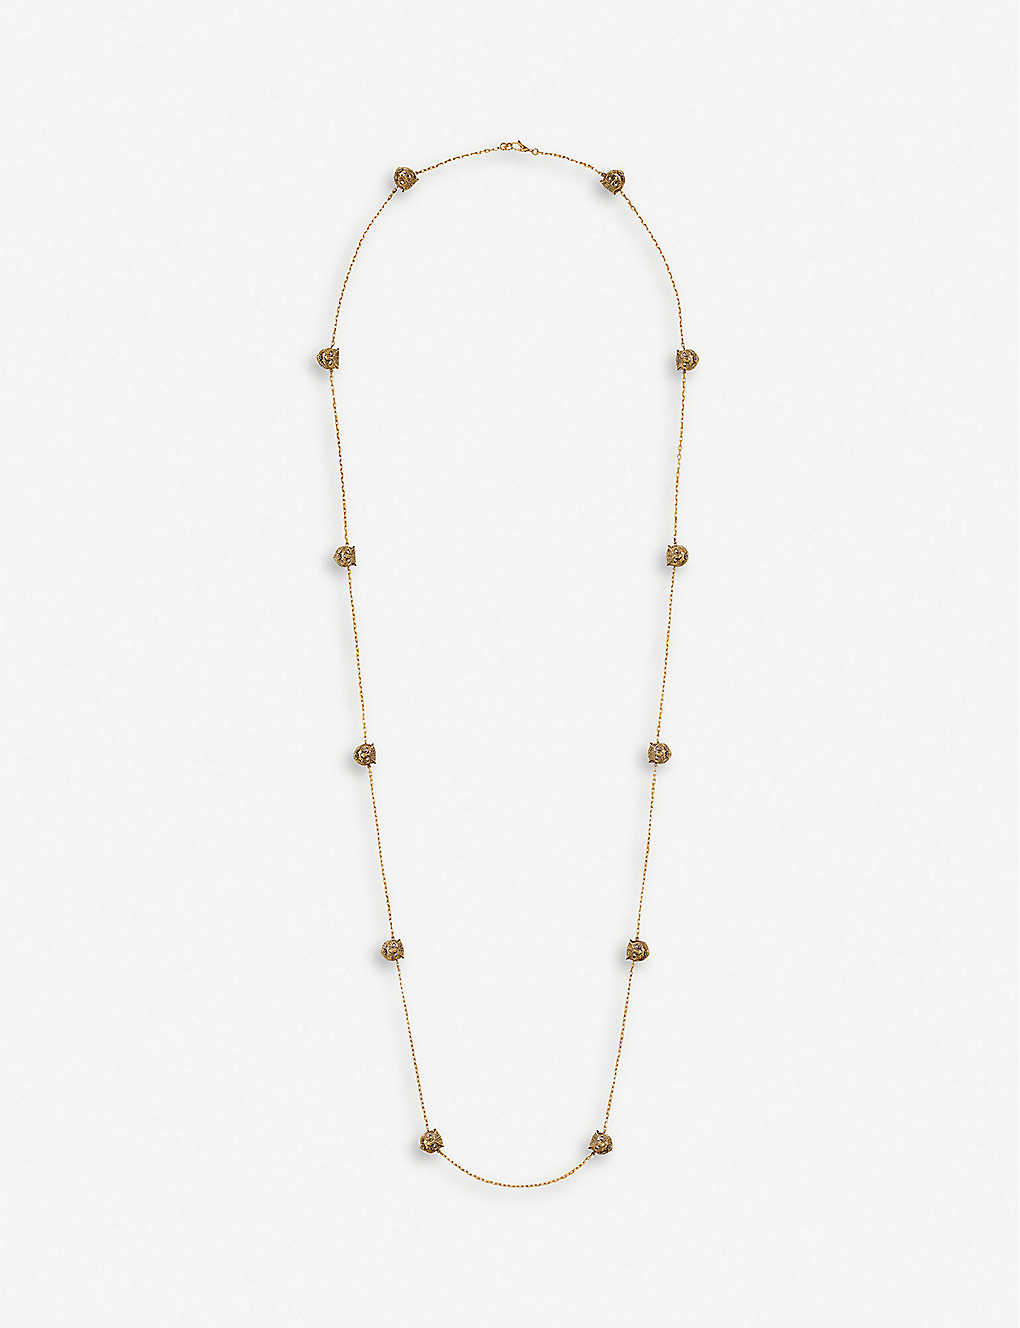 GUCCI: Le Marché des Merveilles 18ct yellow-gold and diamond necklace